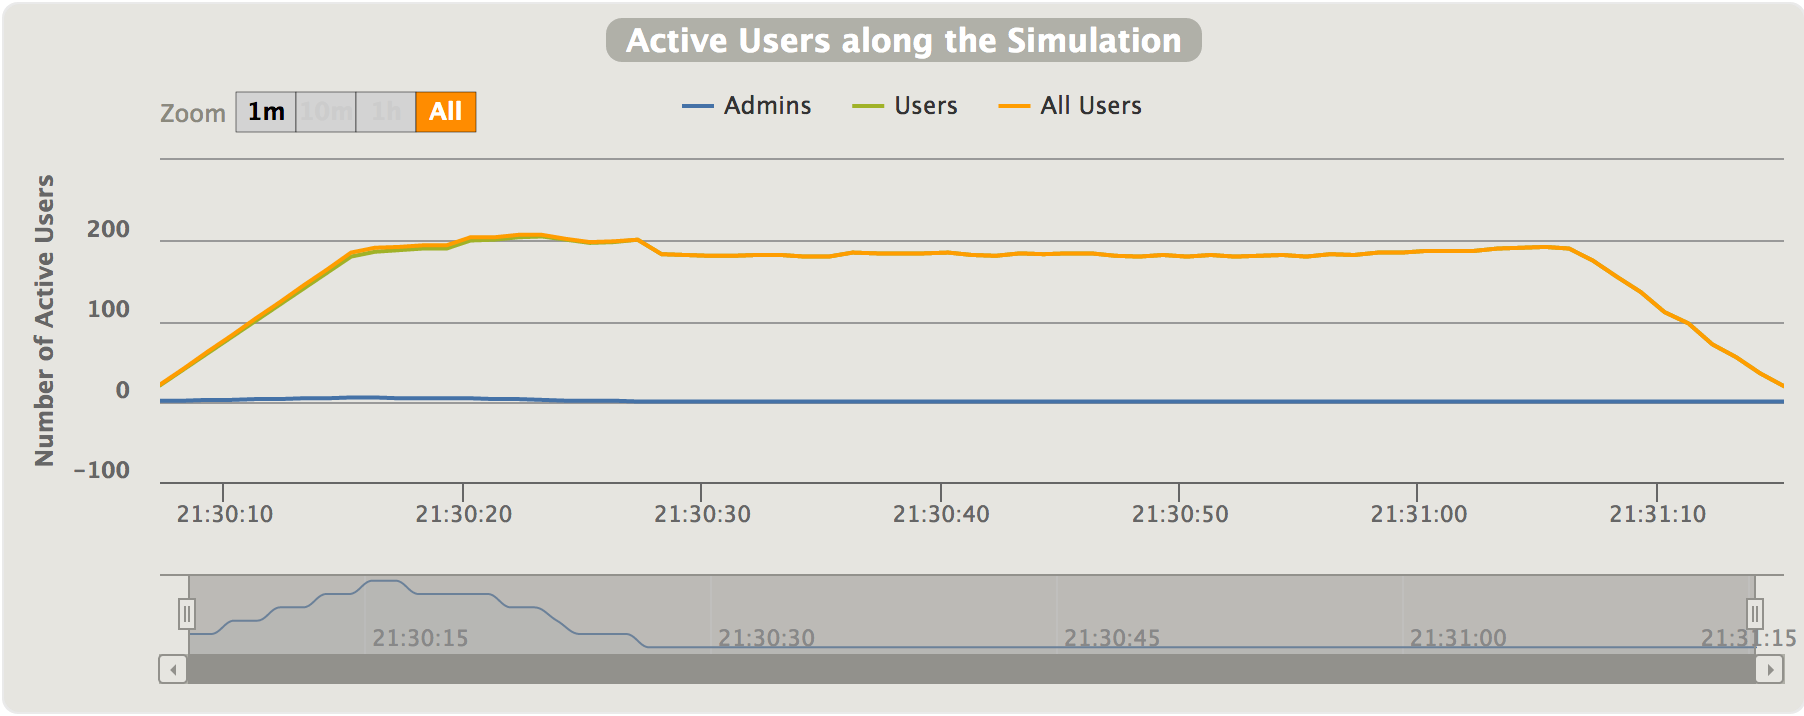 ActiveUsers